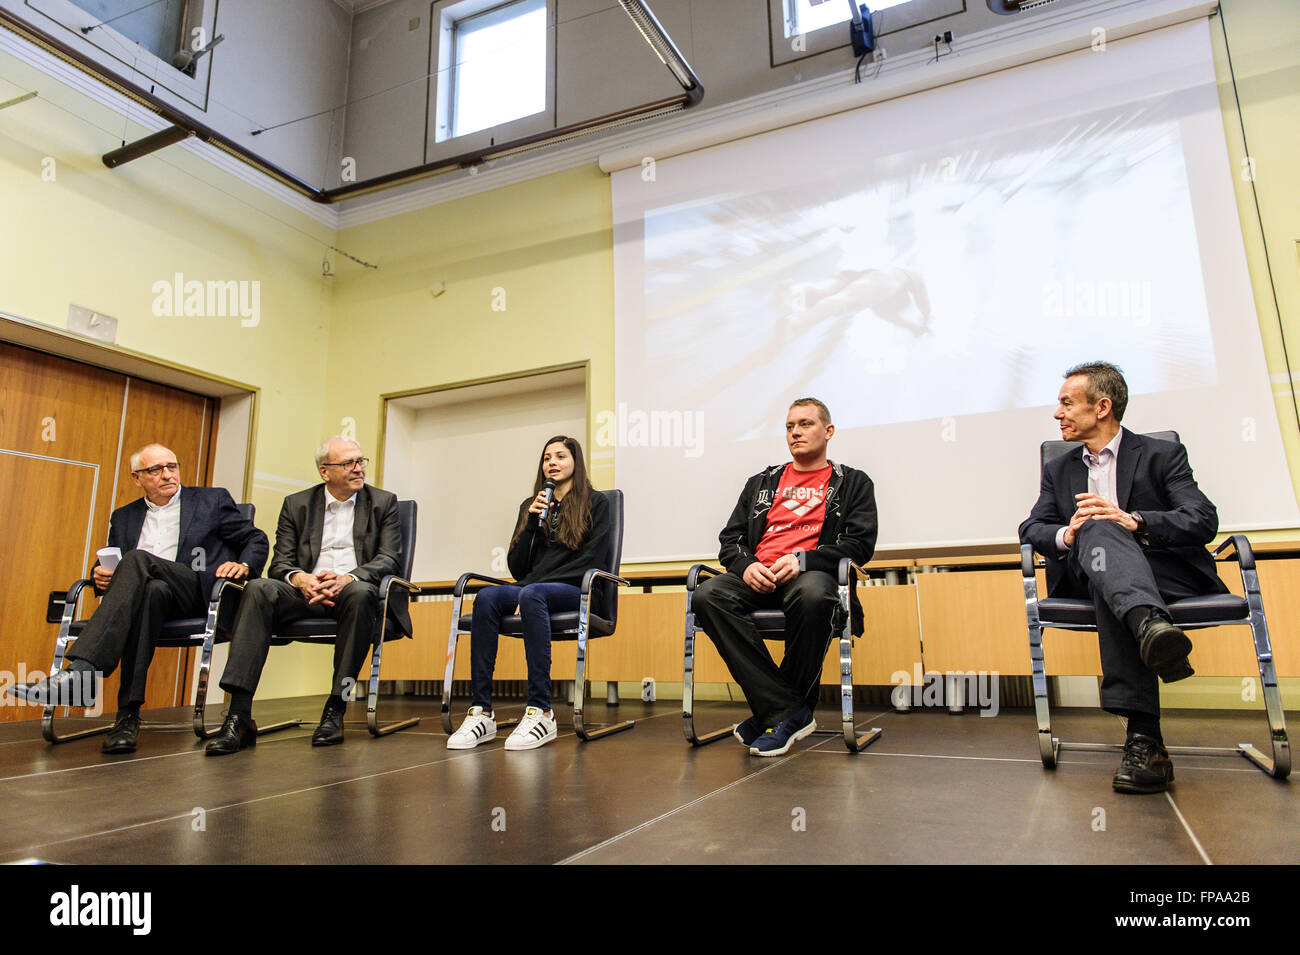 Berlin, Germany. 18th Mar, 2016. Syrian swimmer Yusra Mardini (C), a refugee athlete who now trains at German swimming - Stock Image